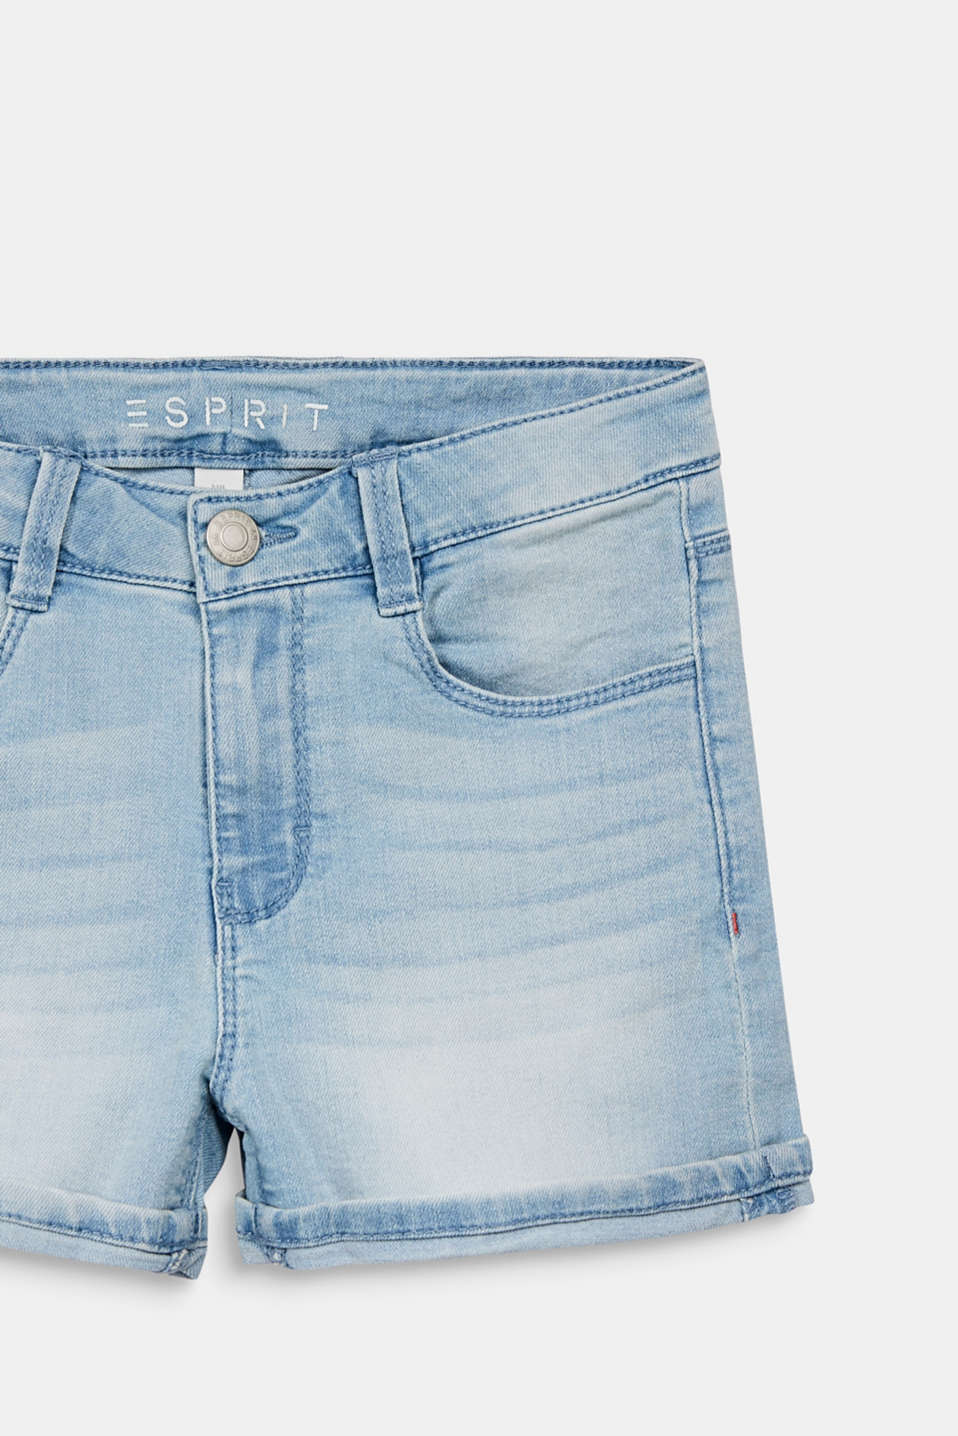 Denim shorts with an adjustable waistband, LCBLEACHED DENIM, detail image number 2